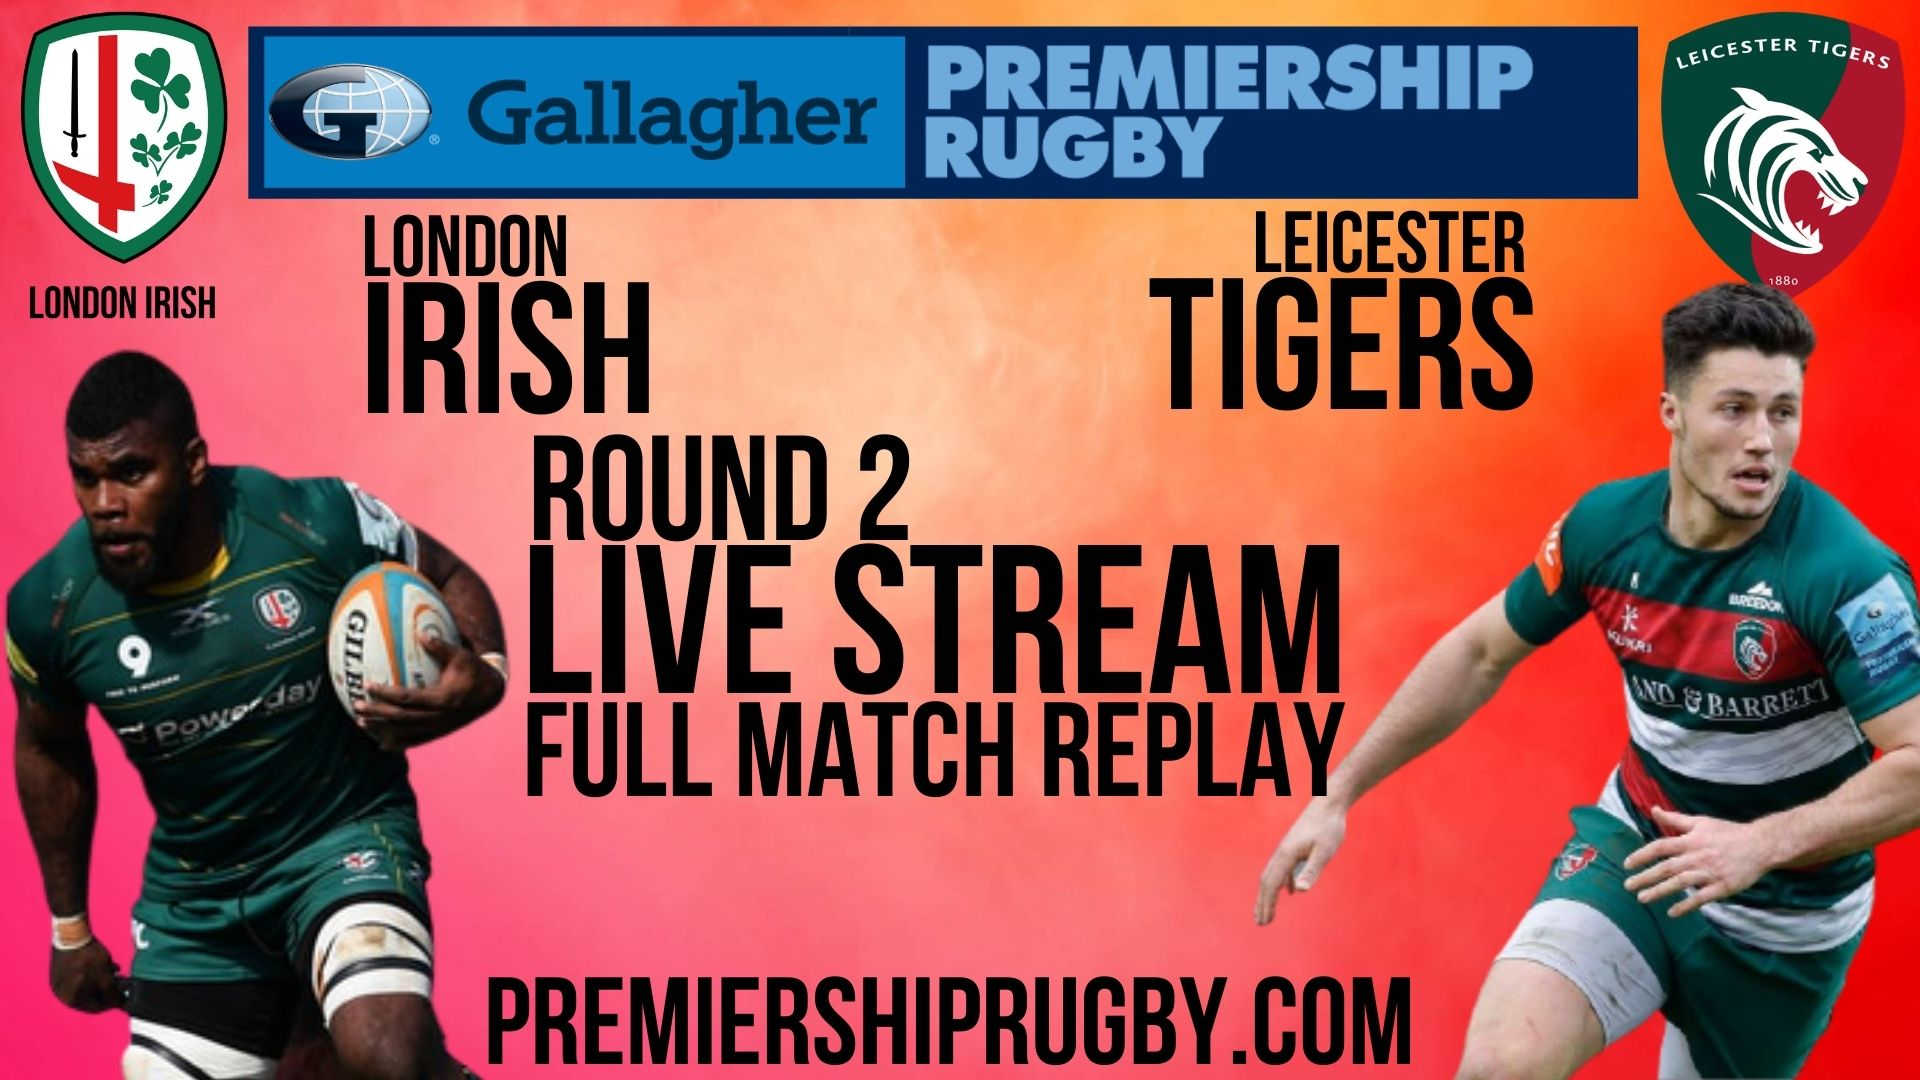 London Irish vs Leicester Tigers Live Stream 2020-21 | Premiership Rugby Round 2 slider